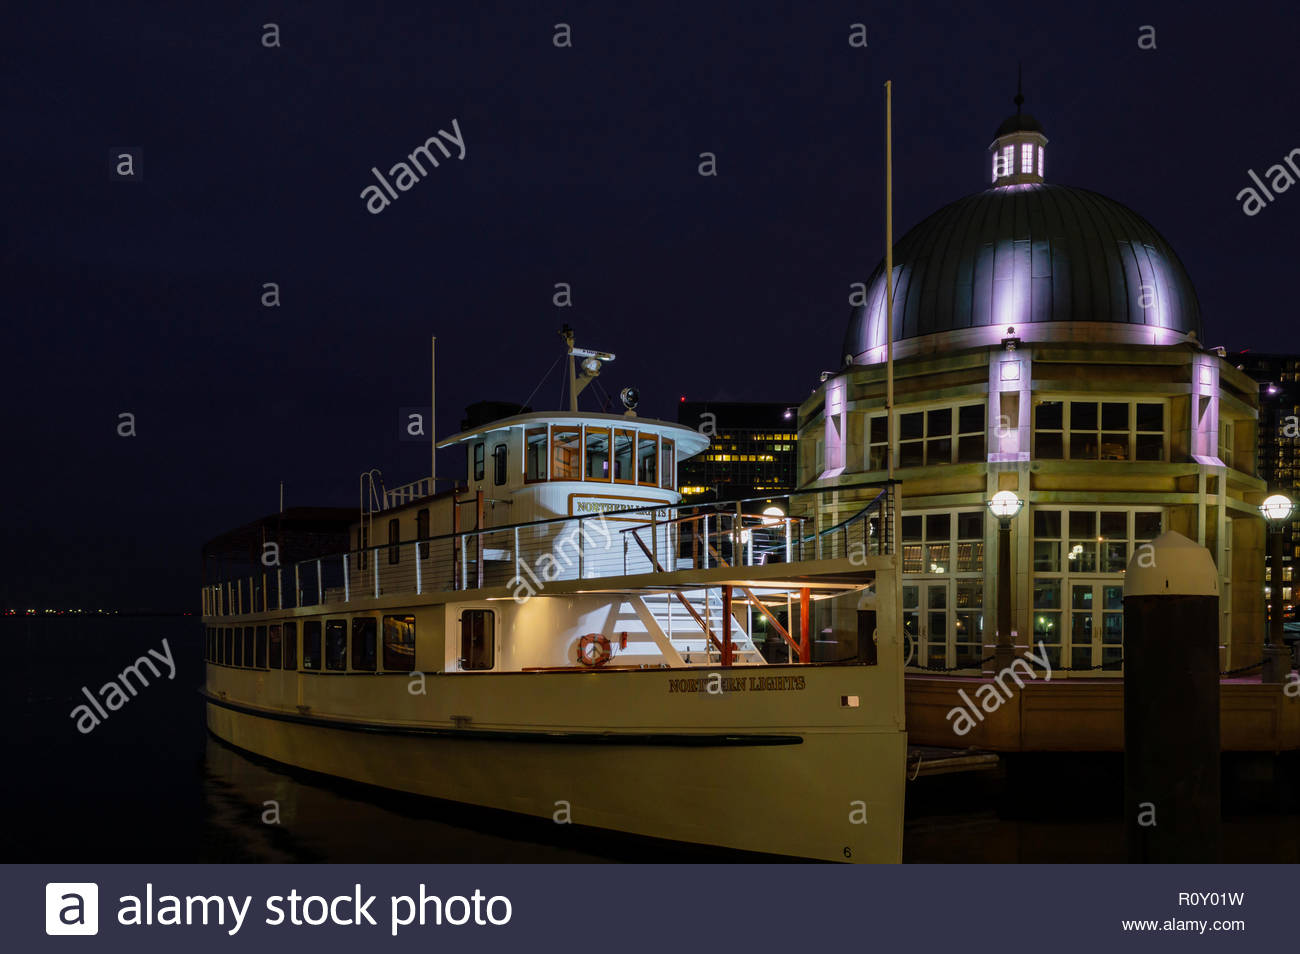 Boston, Massachusetts, USA - January 19, 2017: Foredeck of classically styled cruiser Northern Lights glowing in pre-dawn winter darkness at Rowes Wha - Stock Image